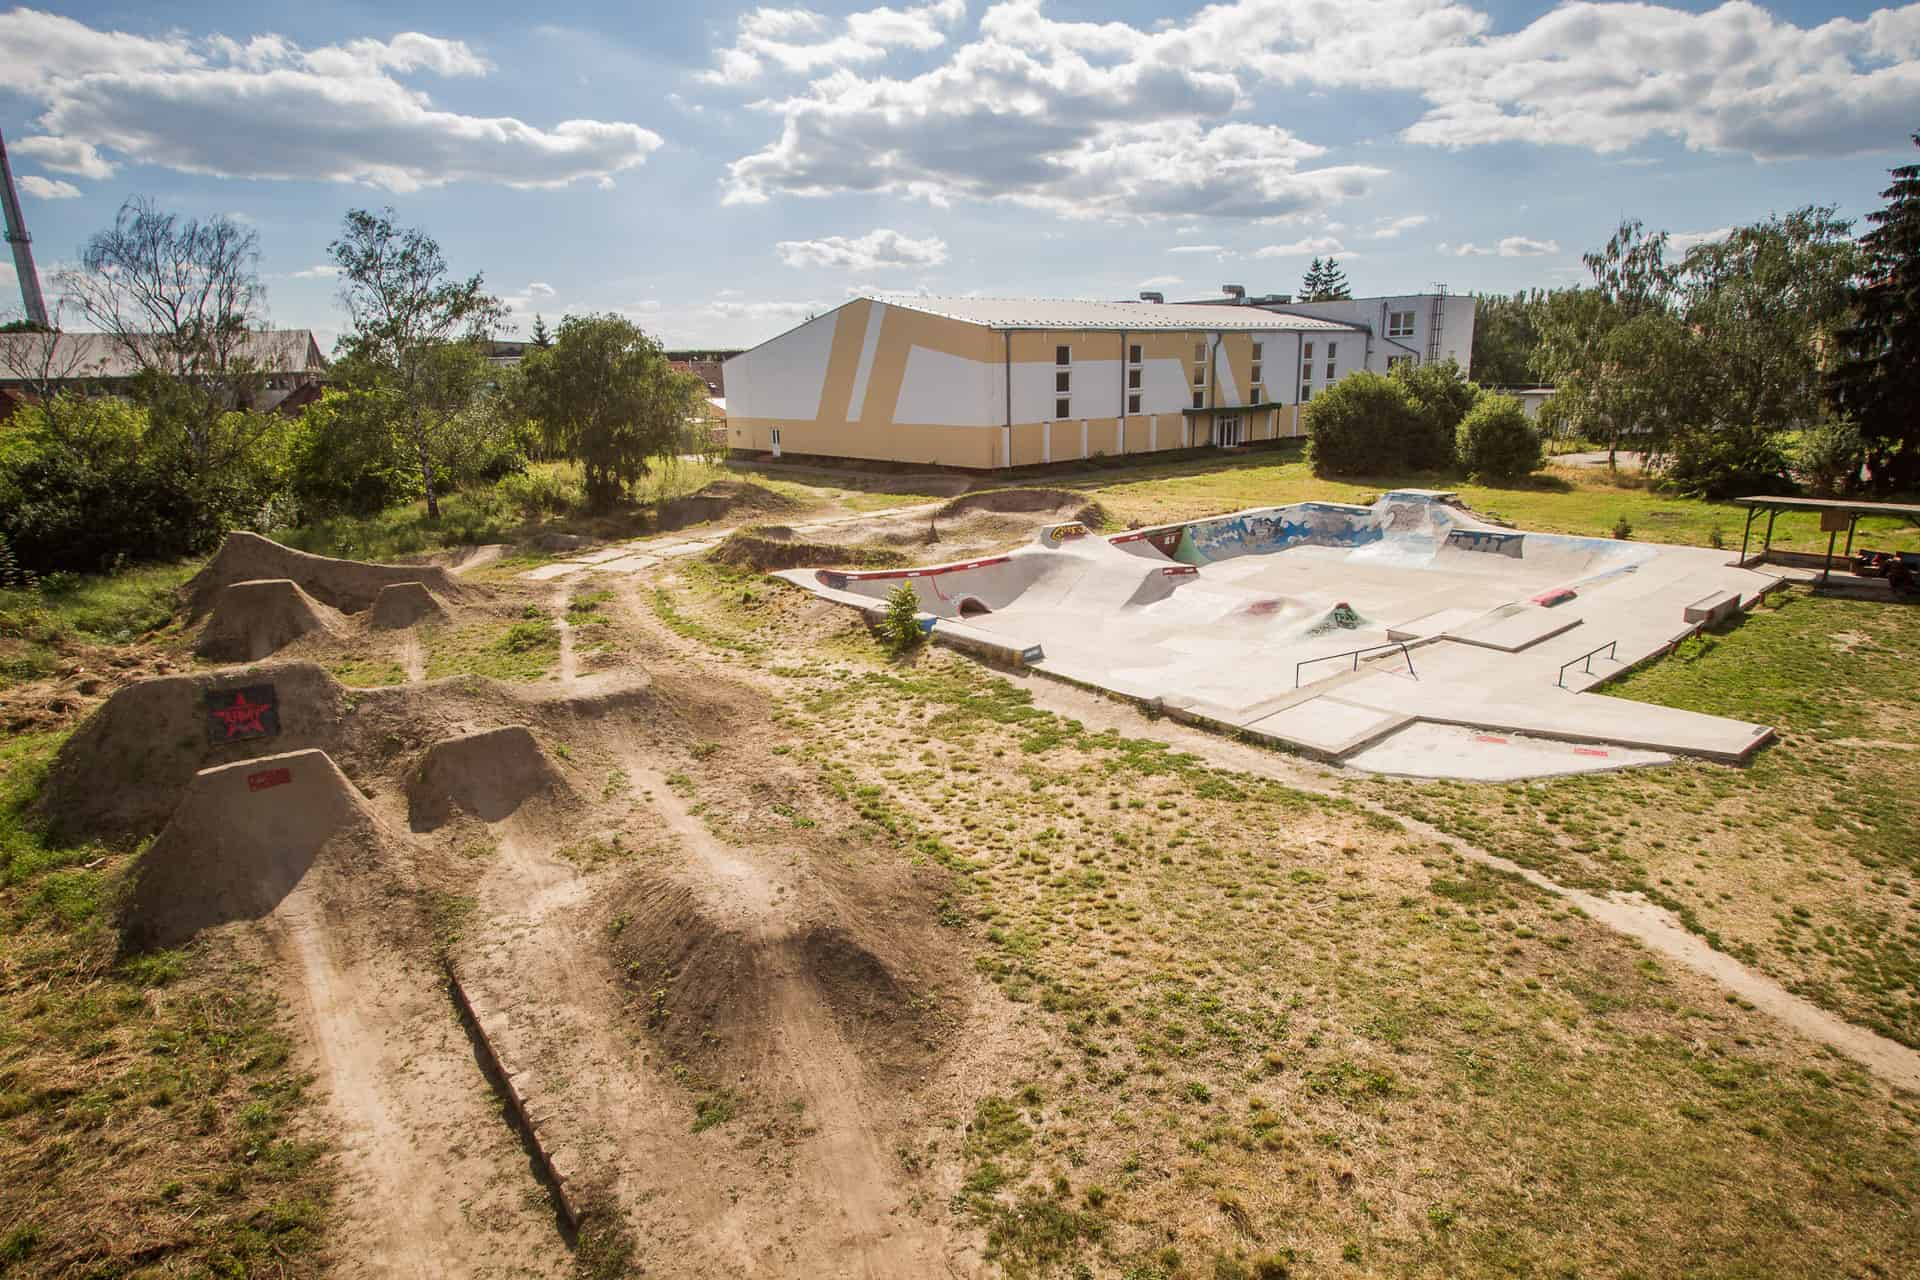 OUTDOOR ZONE – Concrete skatepark and dirt jumps